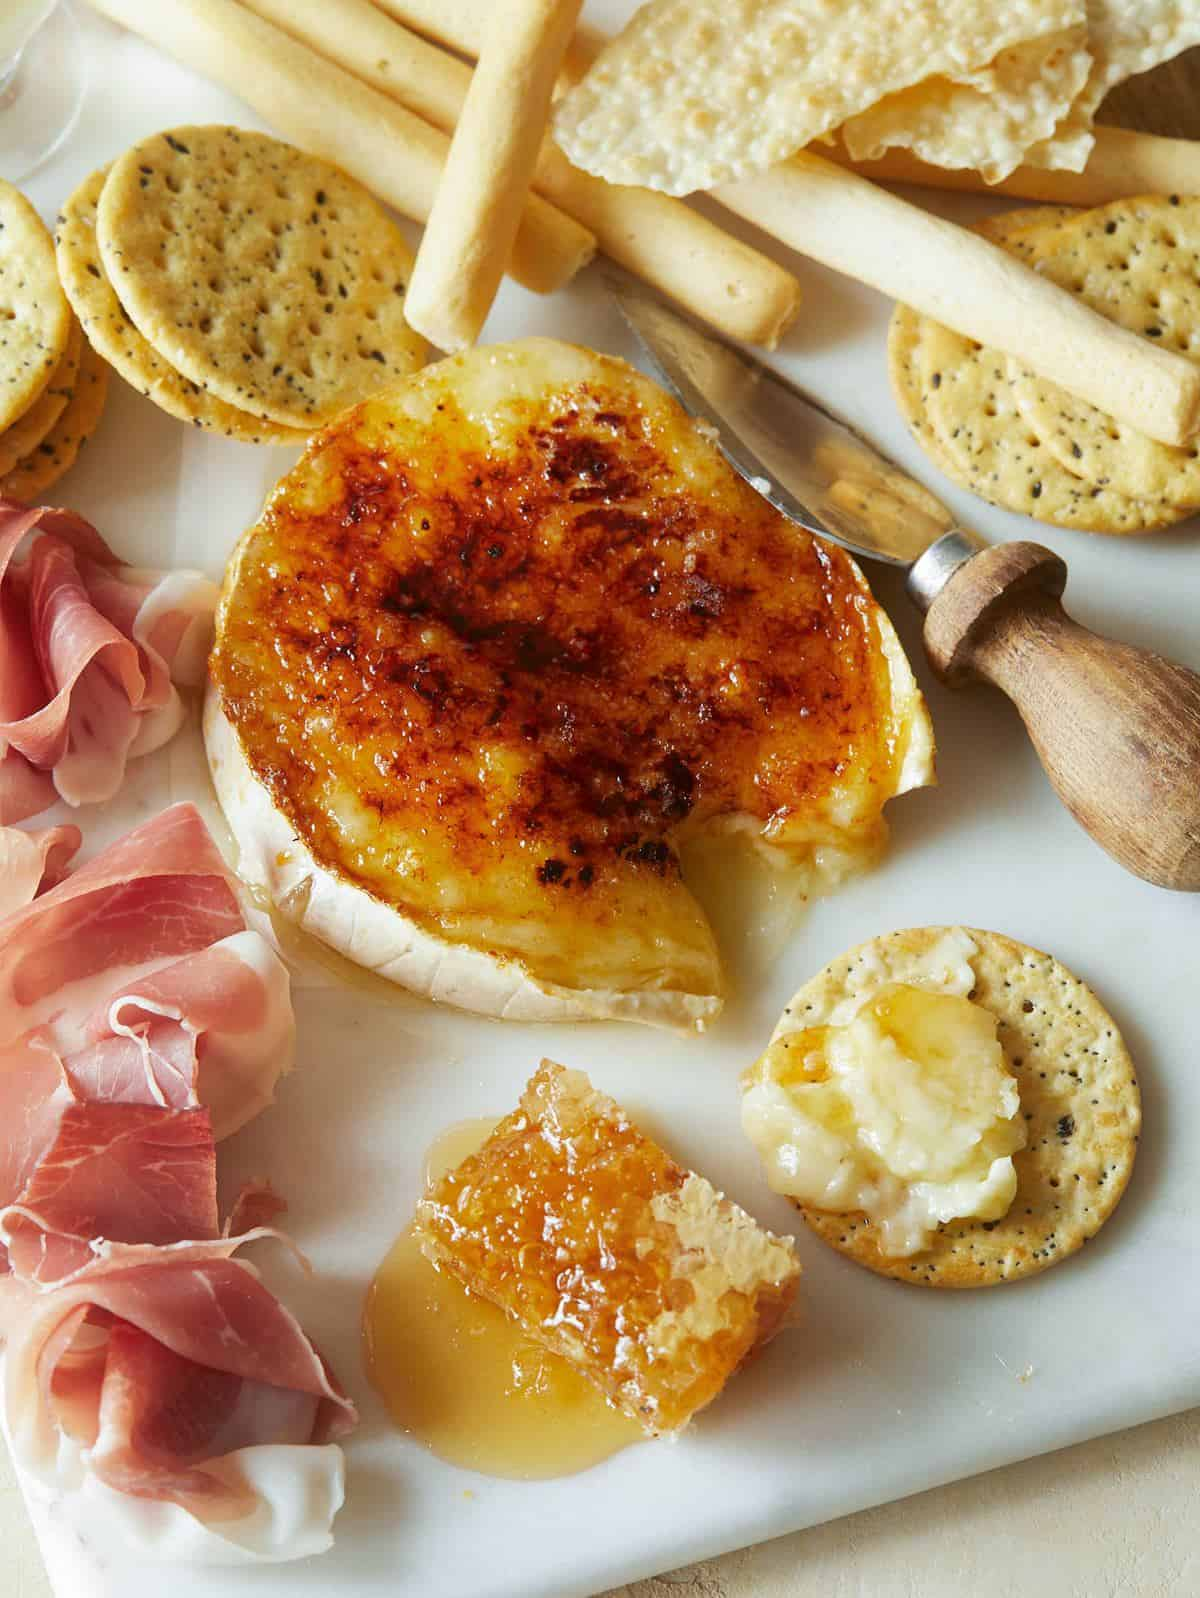 Honey brûlée brie with crackers, meat, and cheese knife.